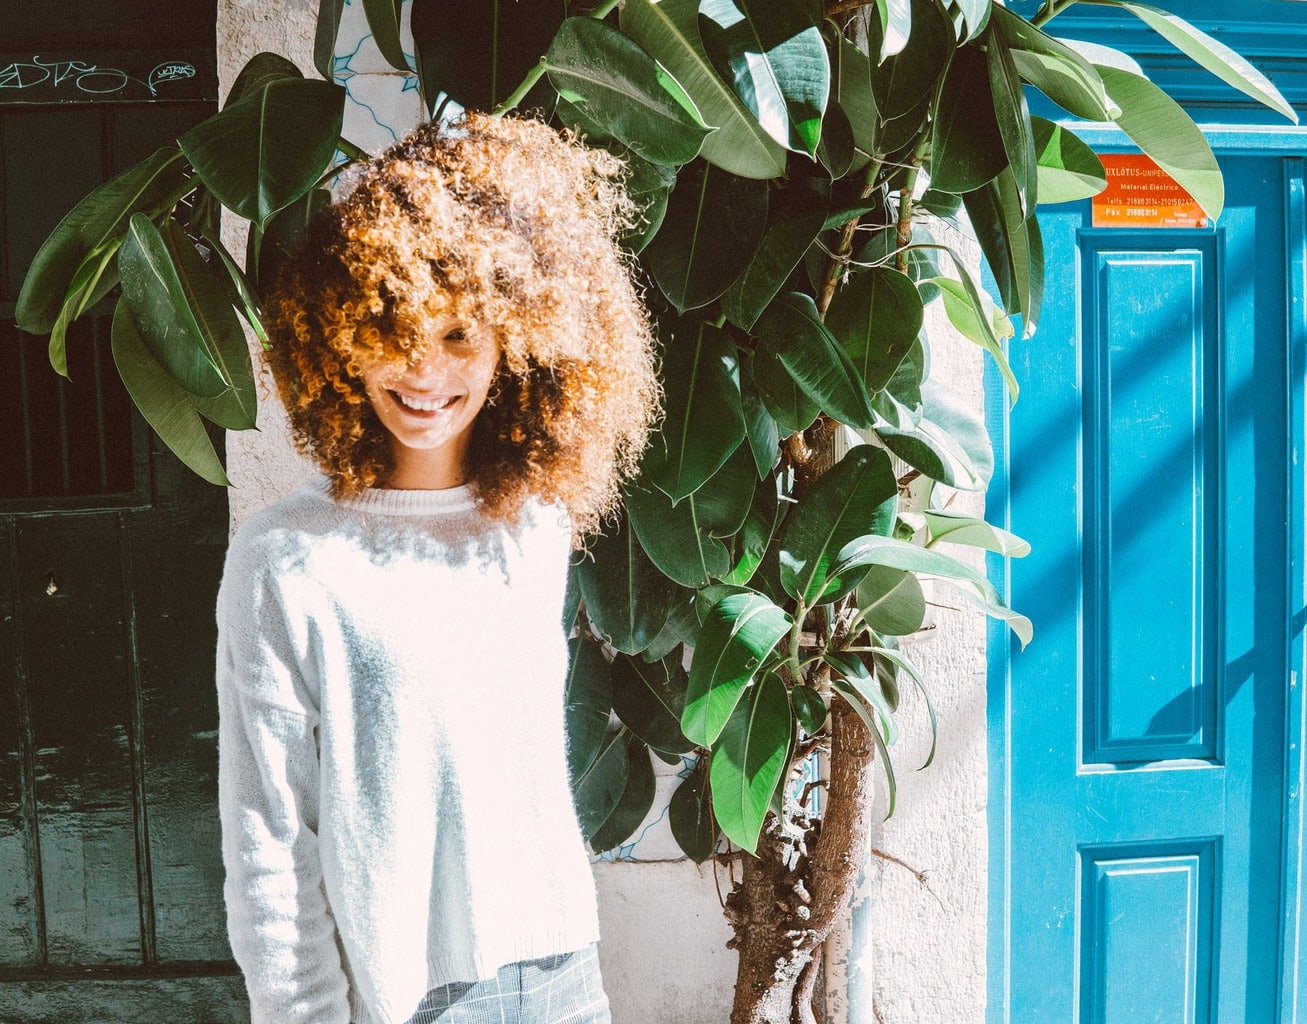 curly hair girl next to trees